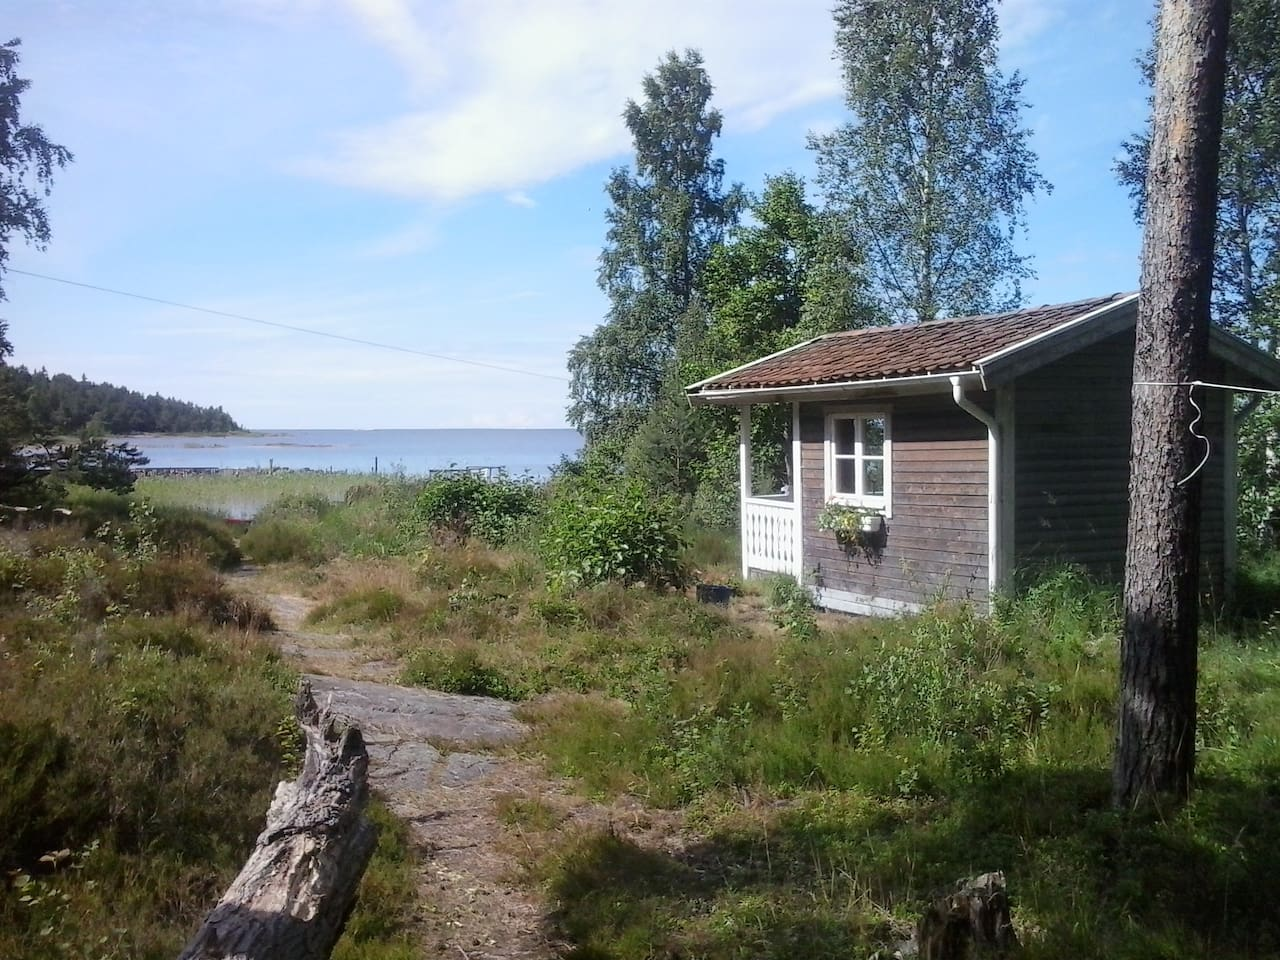 This little cabin is situated just a few meters from the lake.